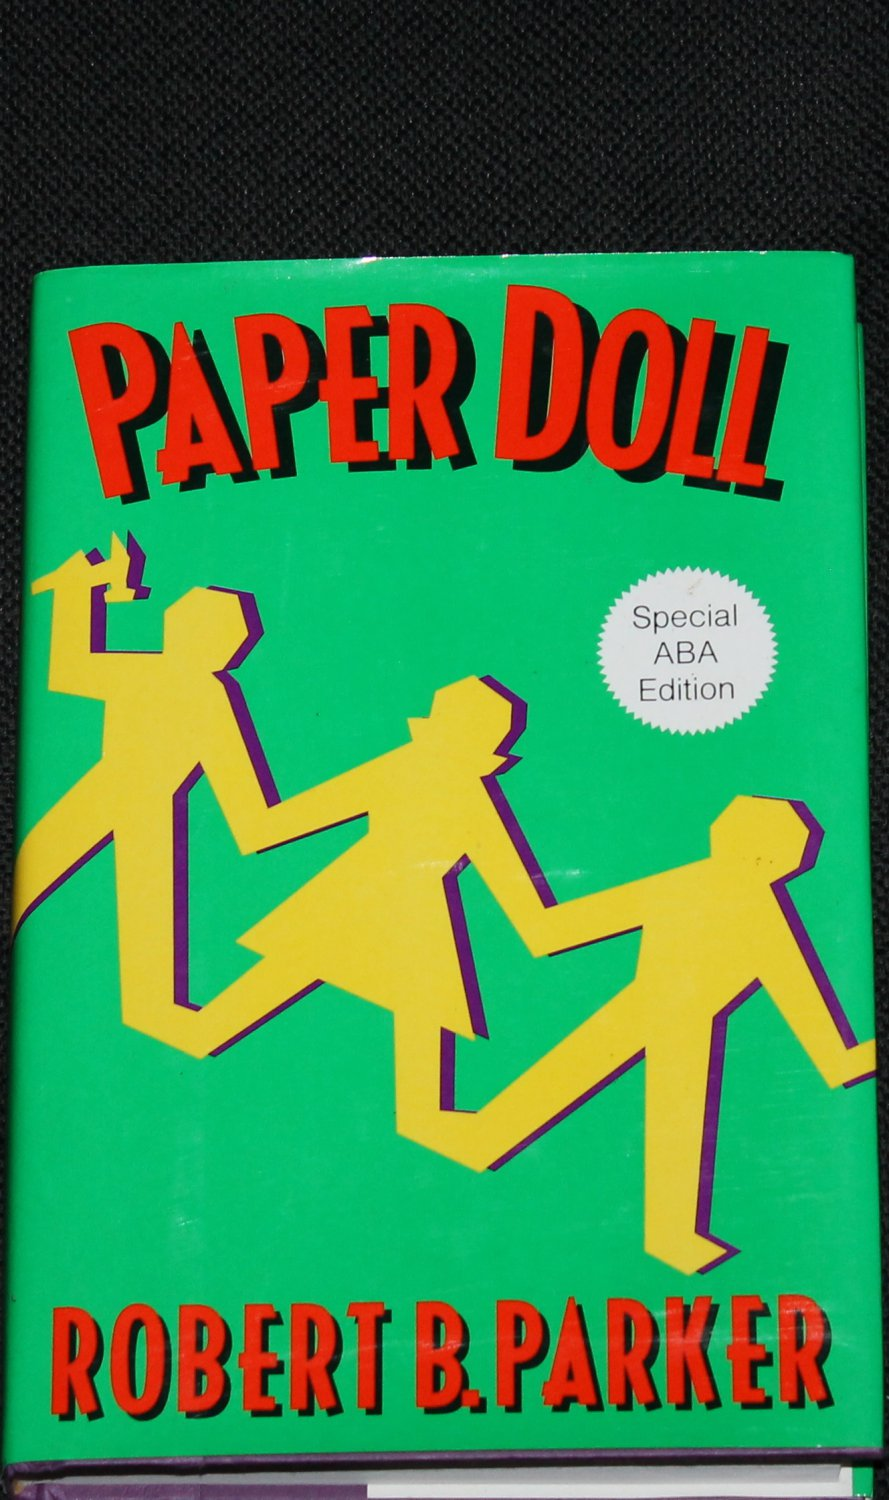 Paper Doll crime fiction suspense thriller novel book by Robert B. Parker